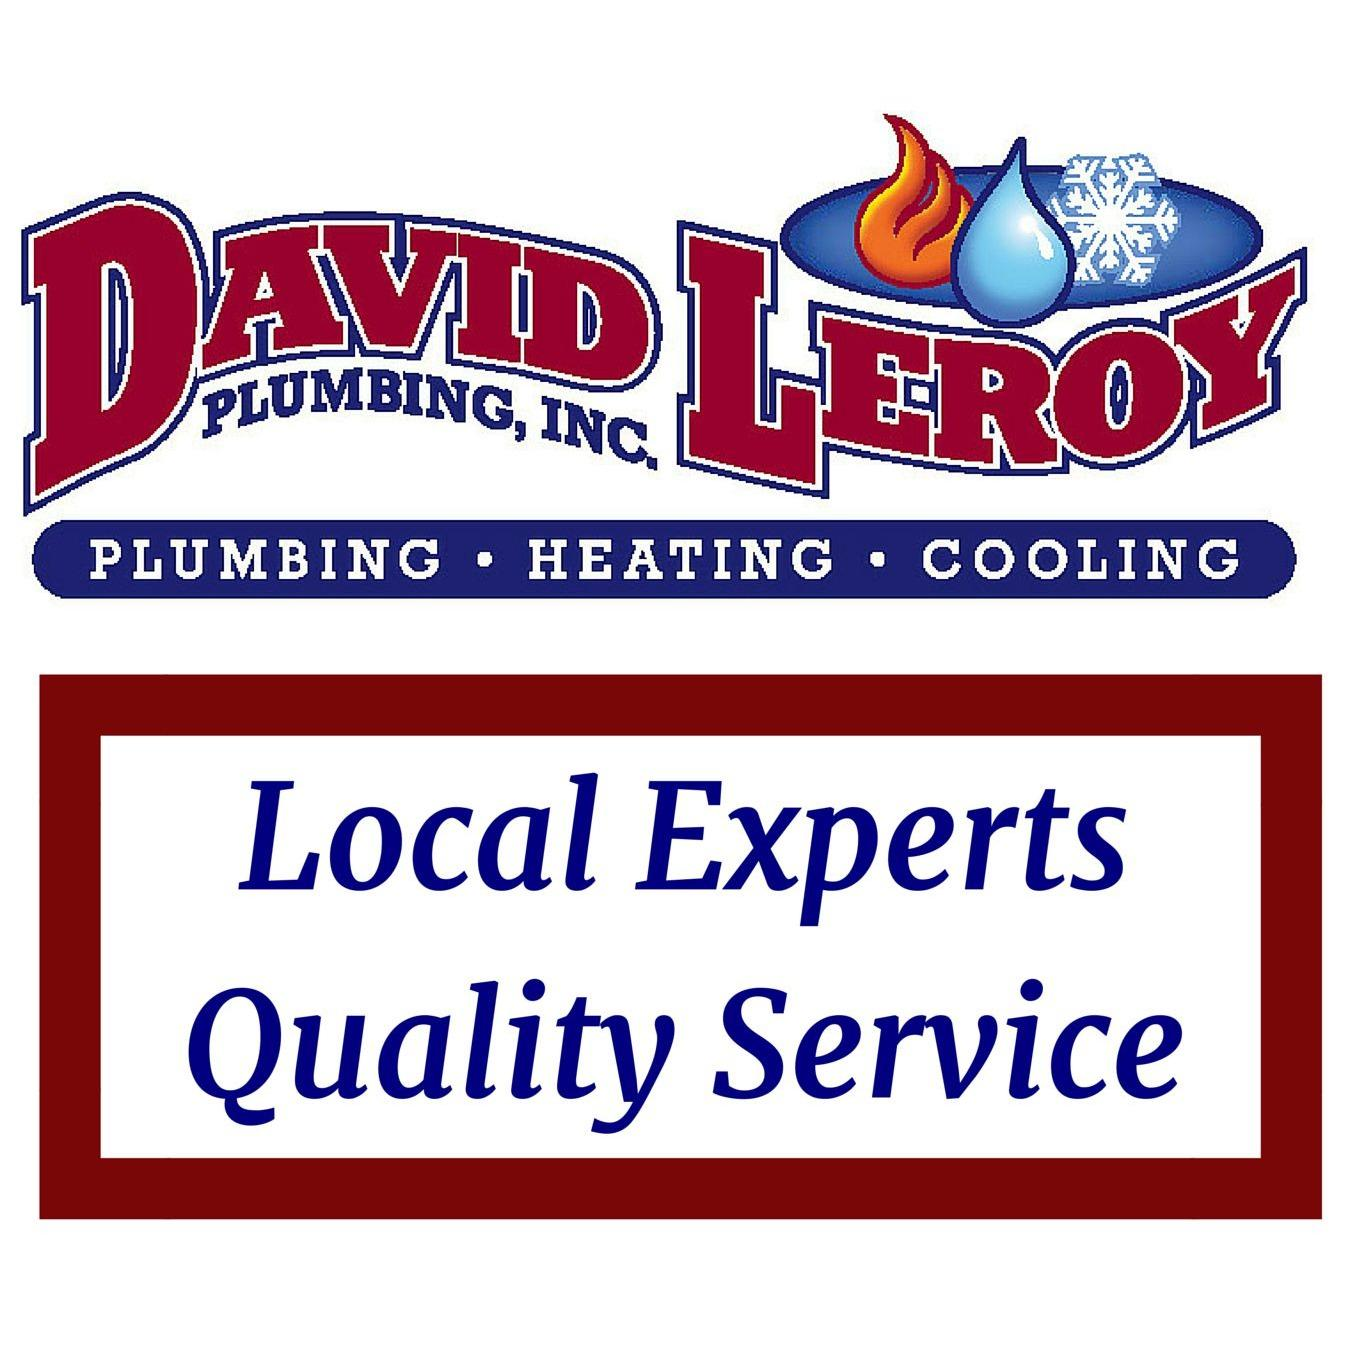 David Leroy Plumbing Inc.